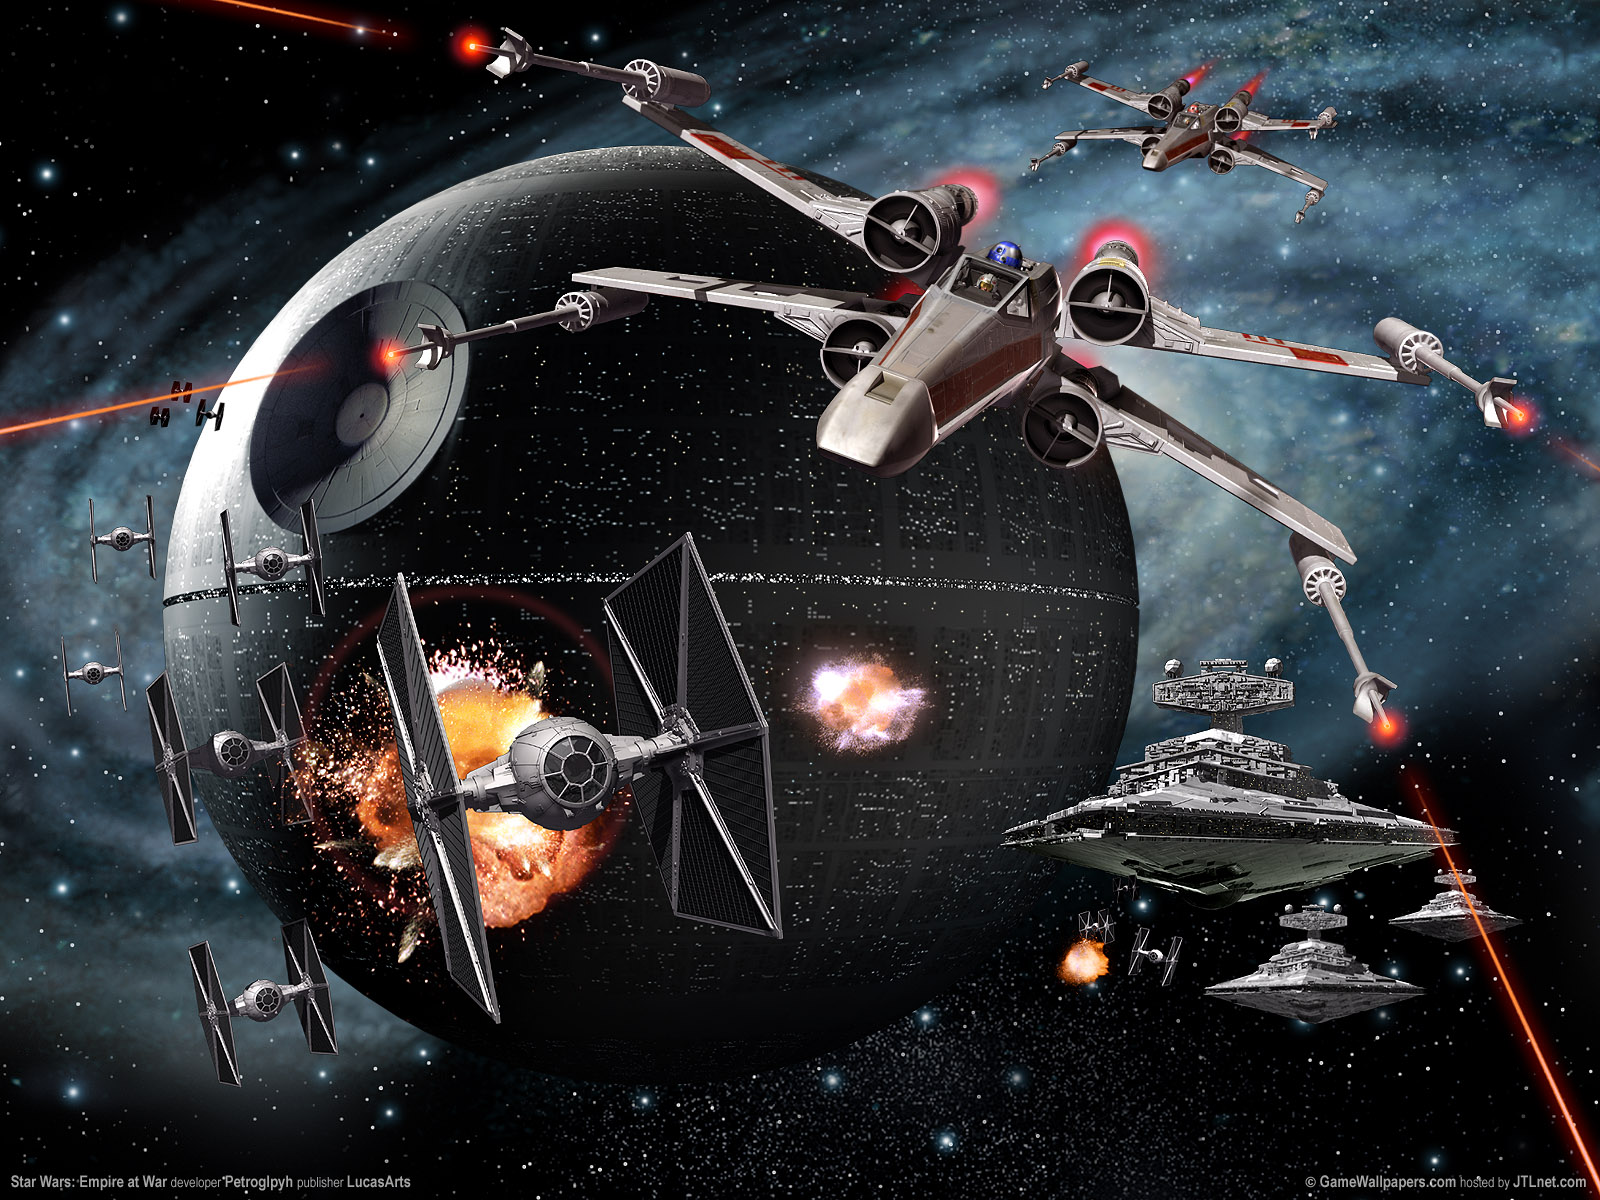 Star Wars wallpaper 1600x1200 8176 1600x1200